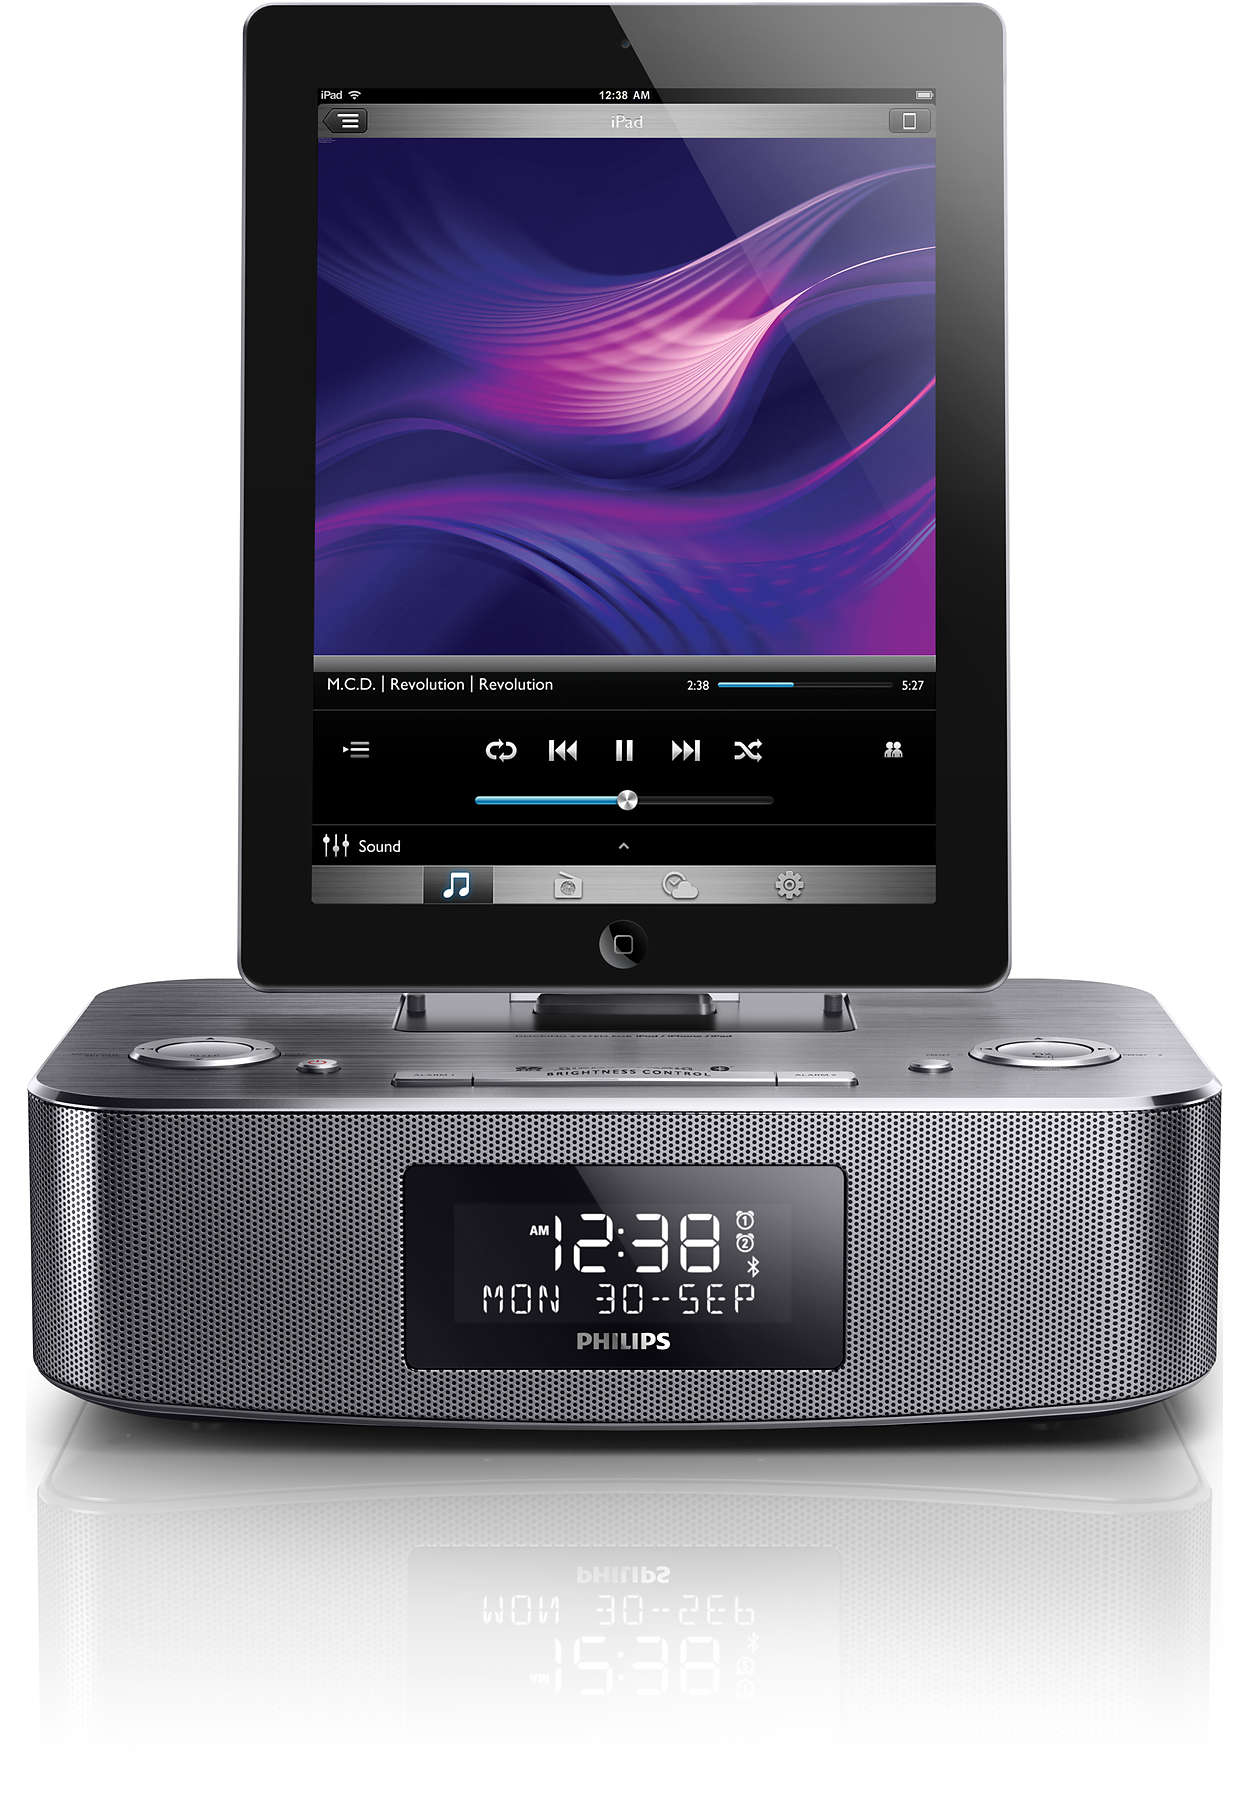 specifications of the dtb297 10 philips